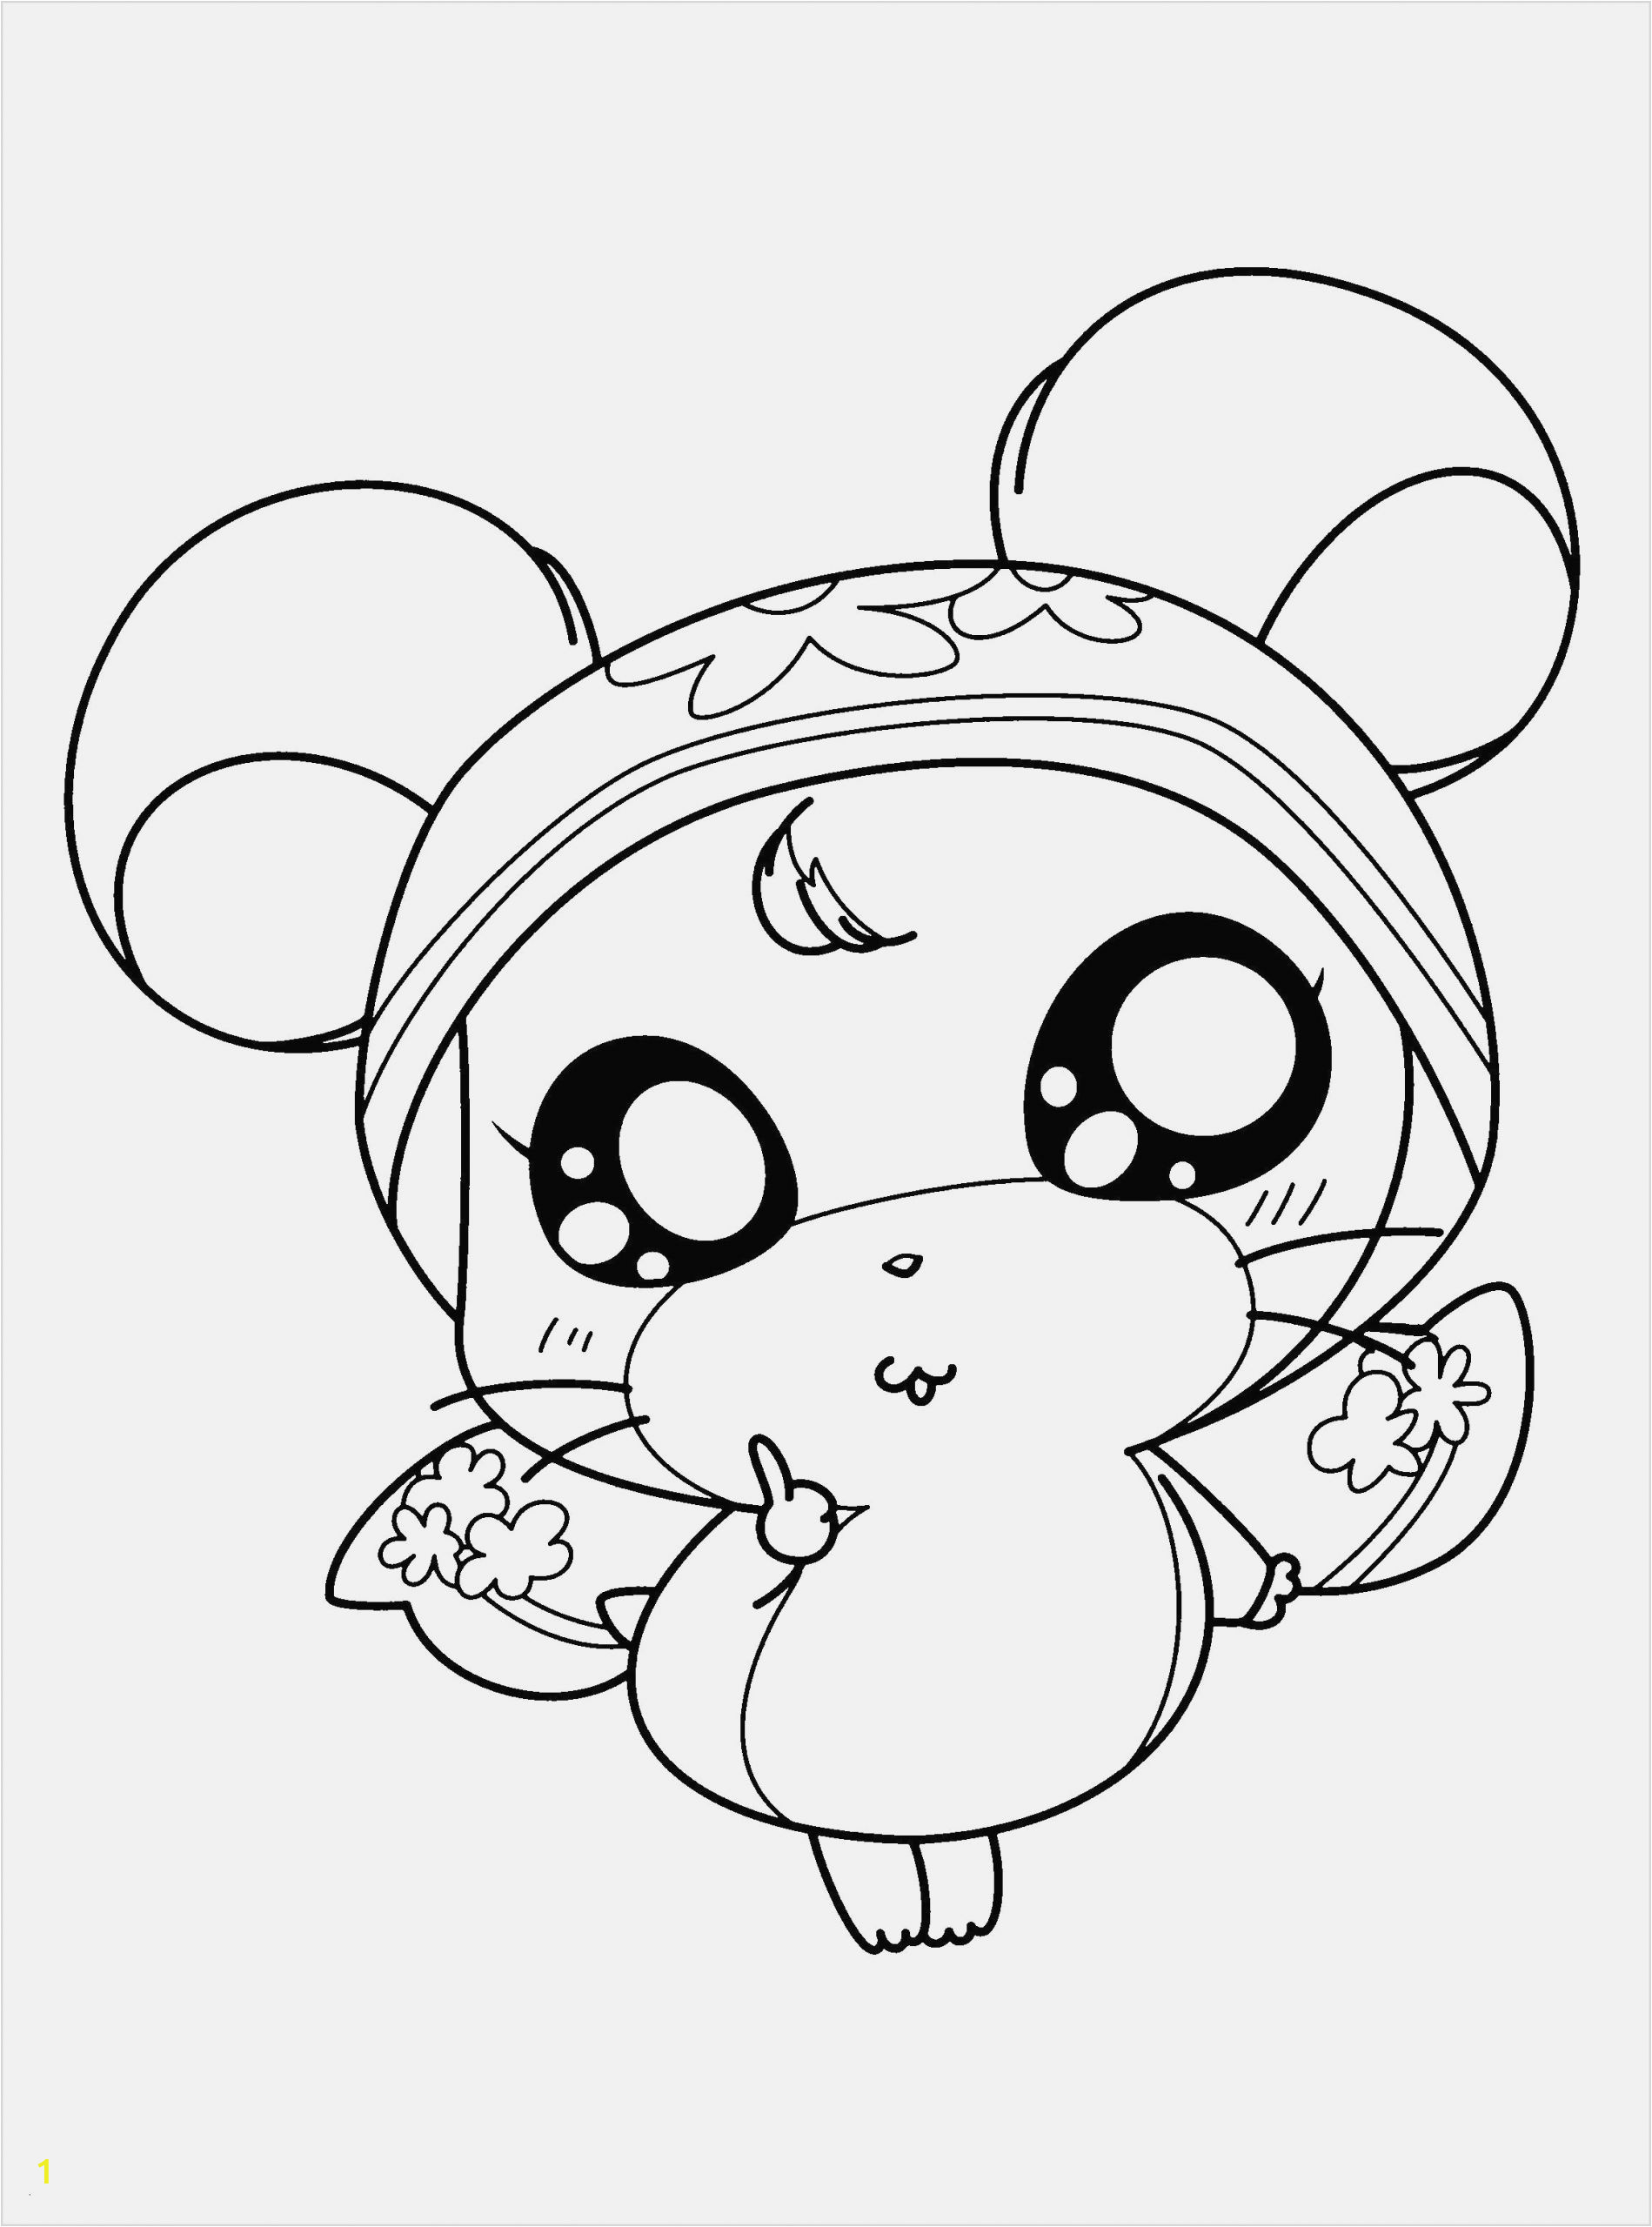 Printable Cartoon Coloring Pages New Elephant Cartoon Coloring – Hivideoshowfo